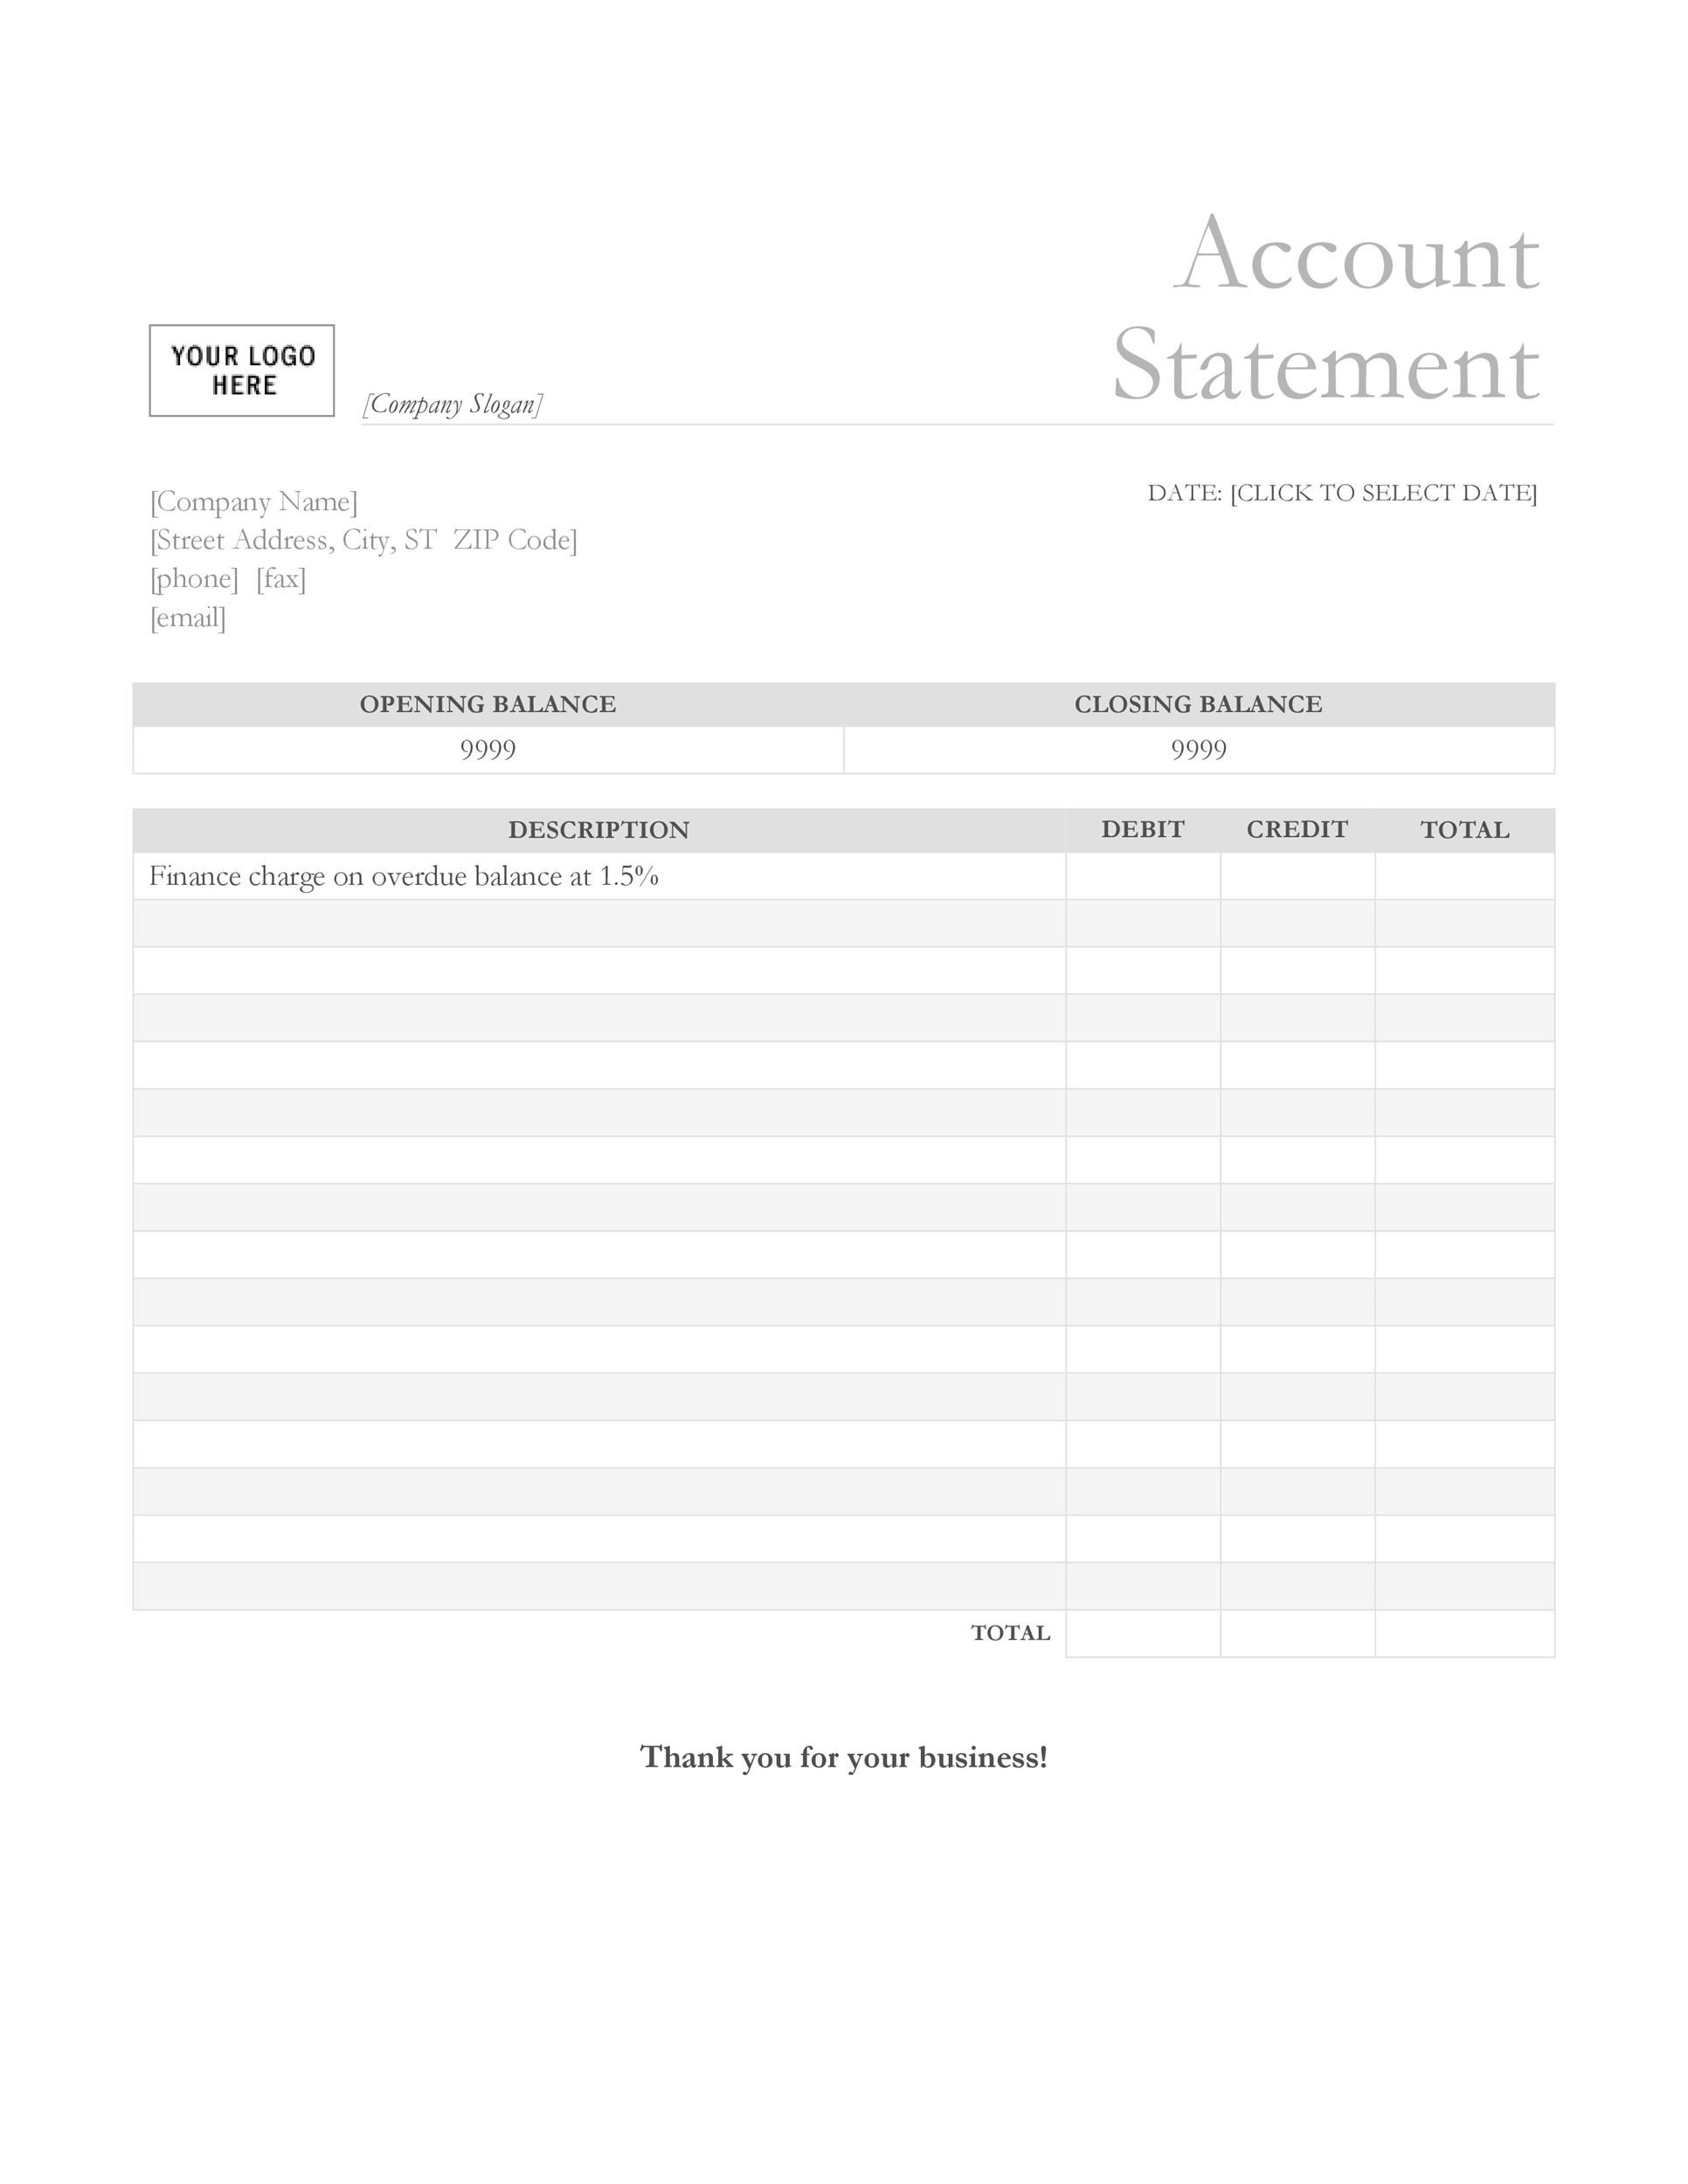 Bank Statement Templates | 23 Editable Bank Statement Templates Free Template Lab